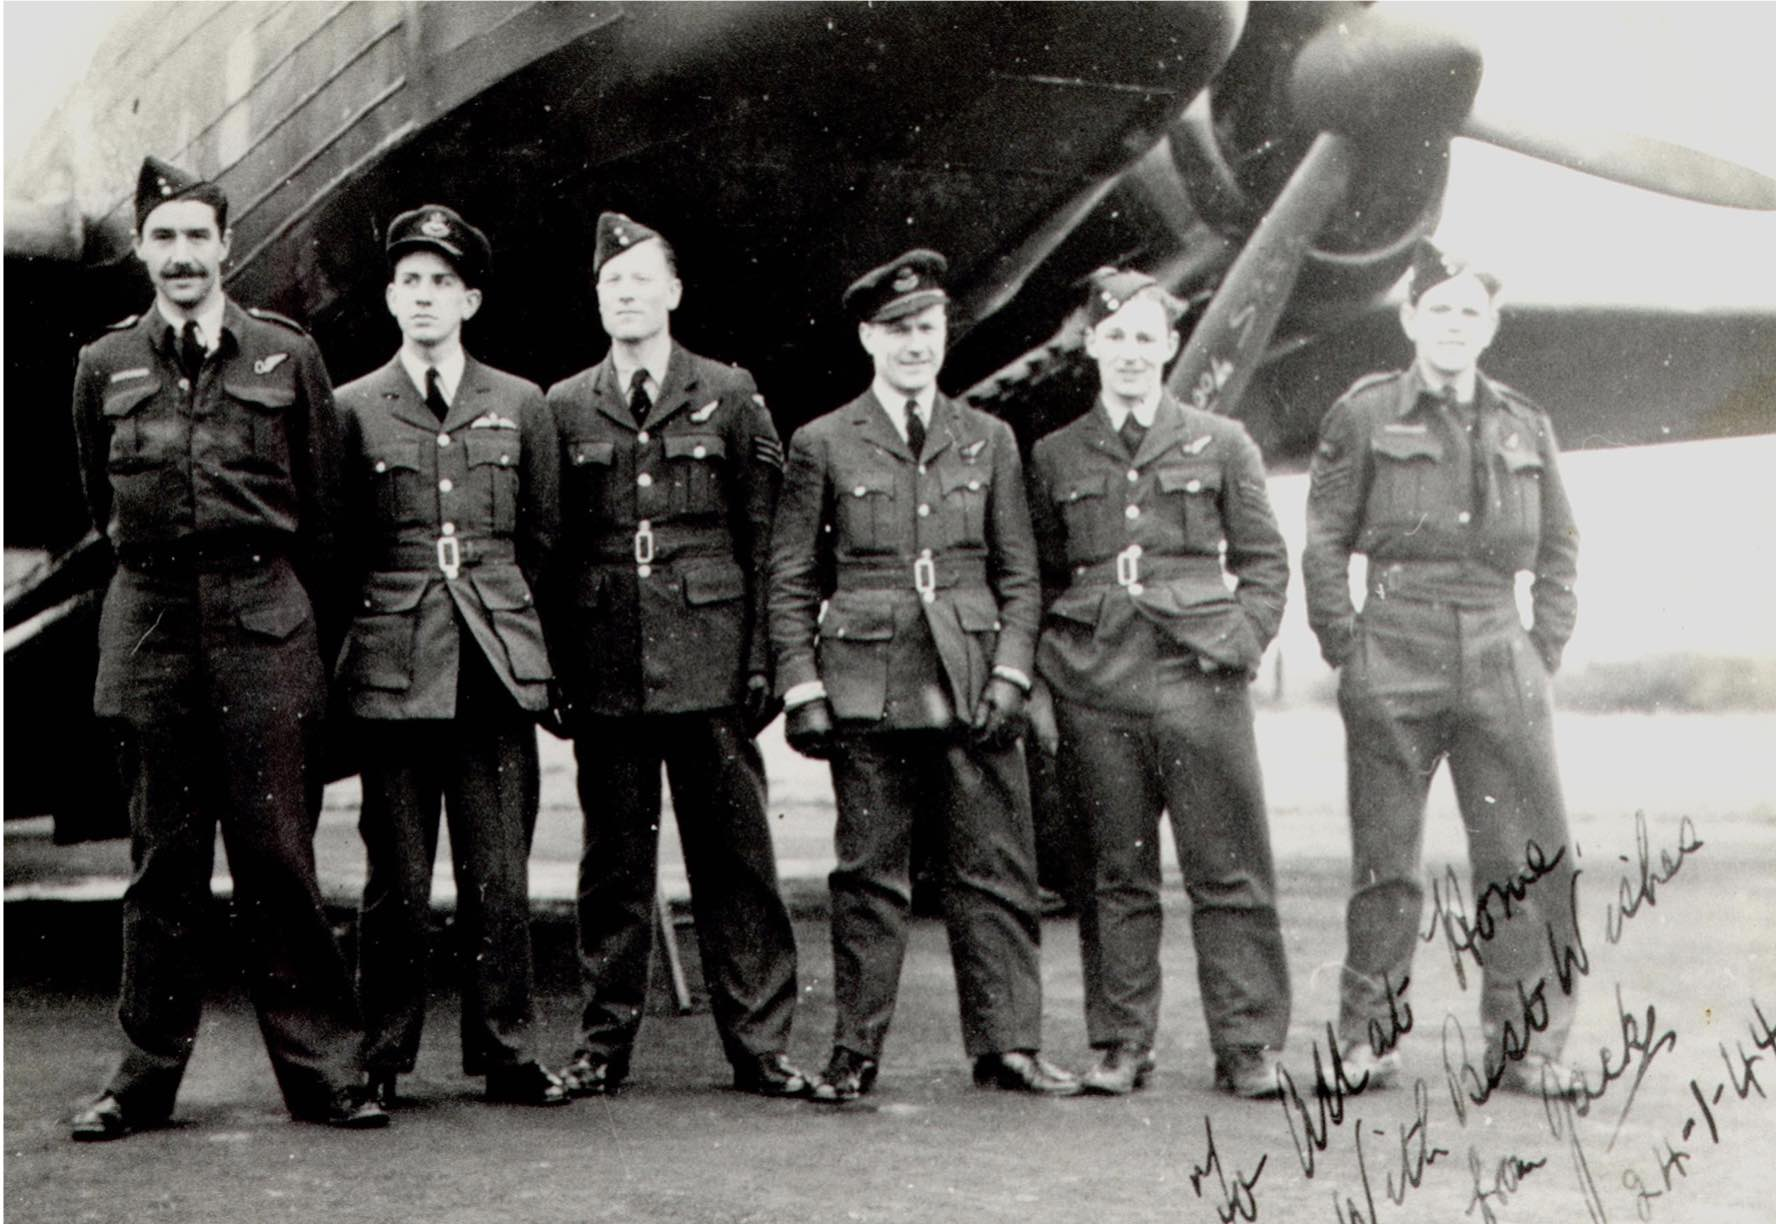 The photograph shows Jack, second from the left on a bomber conversion course prior to converting to the Lancaster. The aircraft is a Wellington bomber and several of the aircrew joined up with Jack on 115 Sqn. Extreme left is his observer. The photo is signed 'All at home, with best wishes from Jack. 24.1.44.'